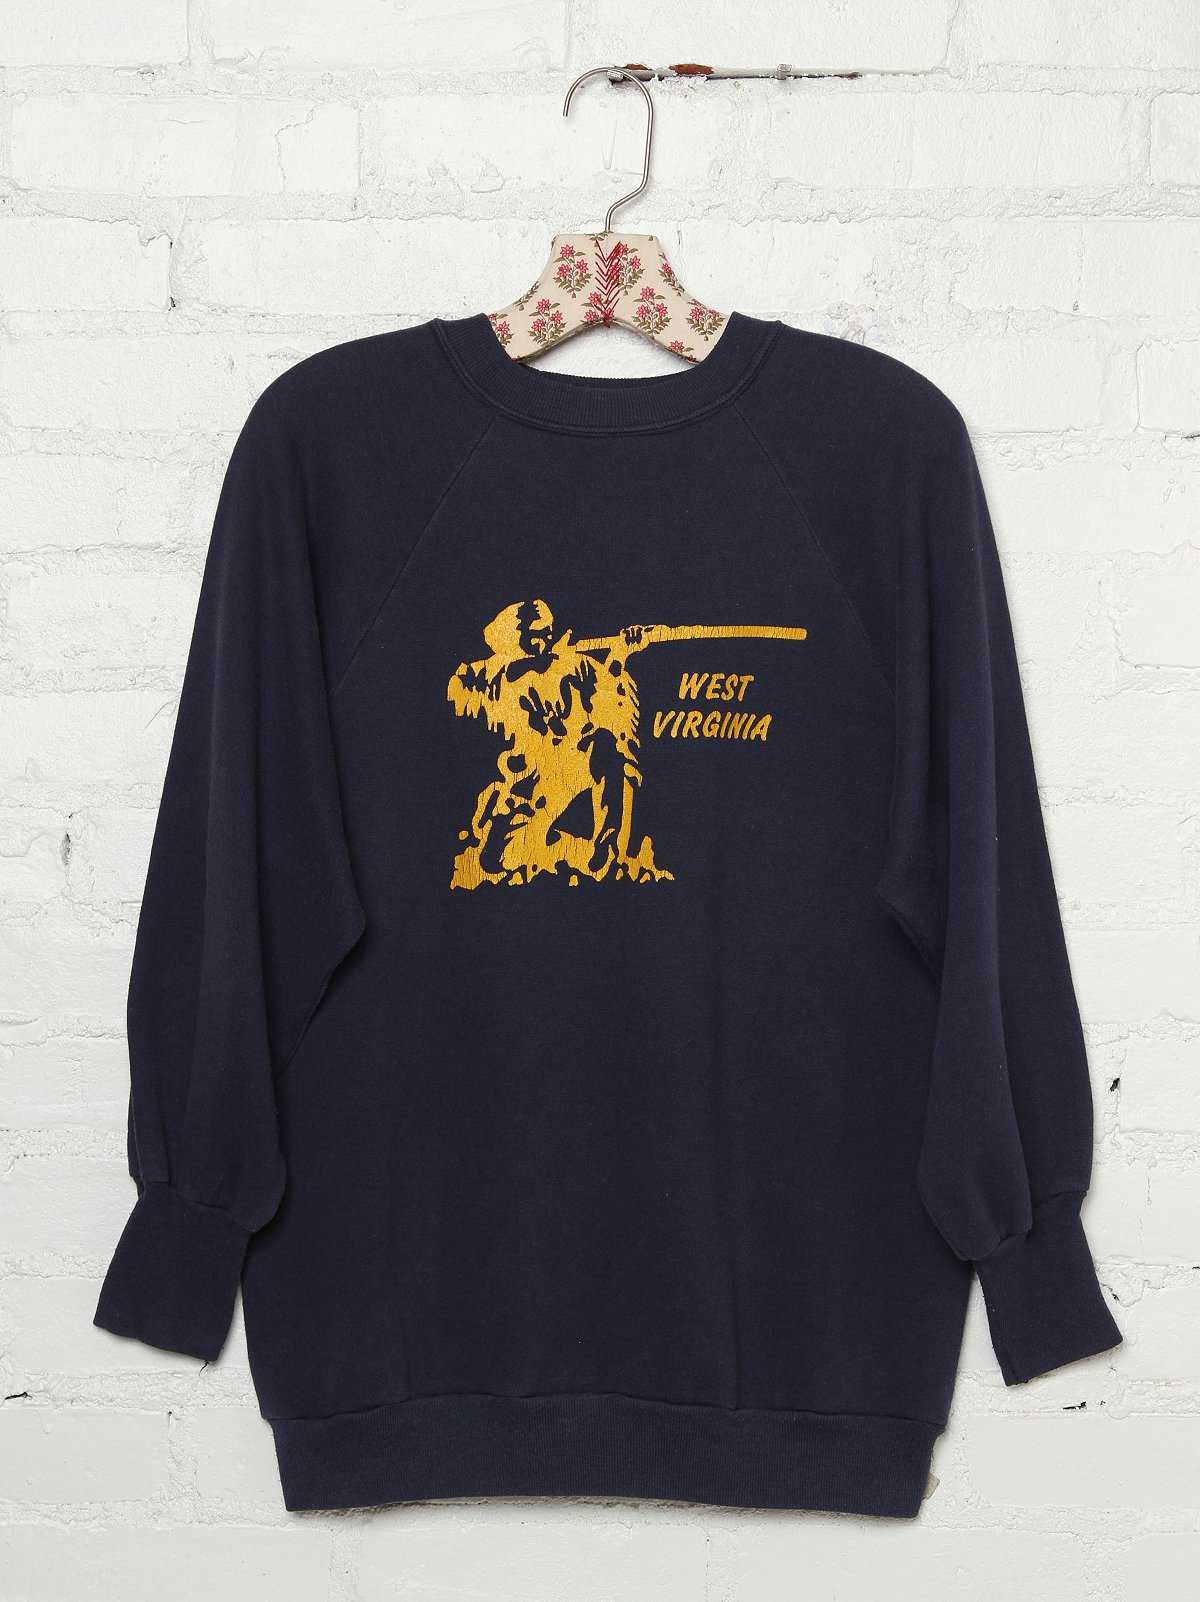 Vintage West Virginia Graphic Pullover